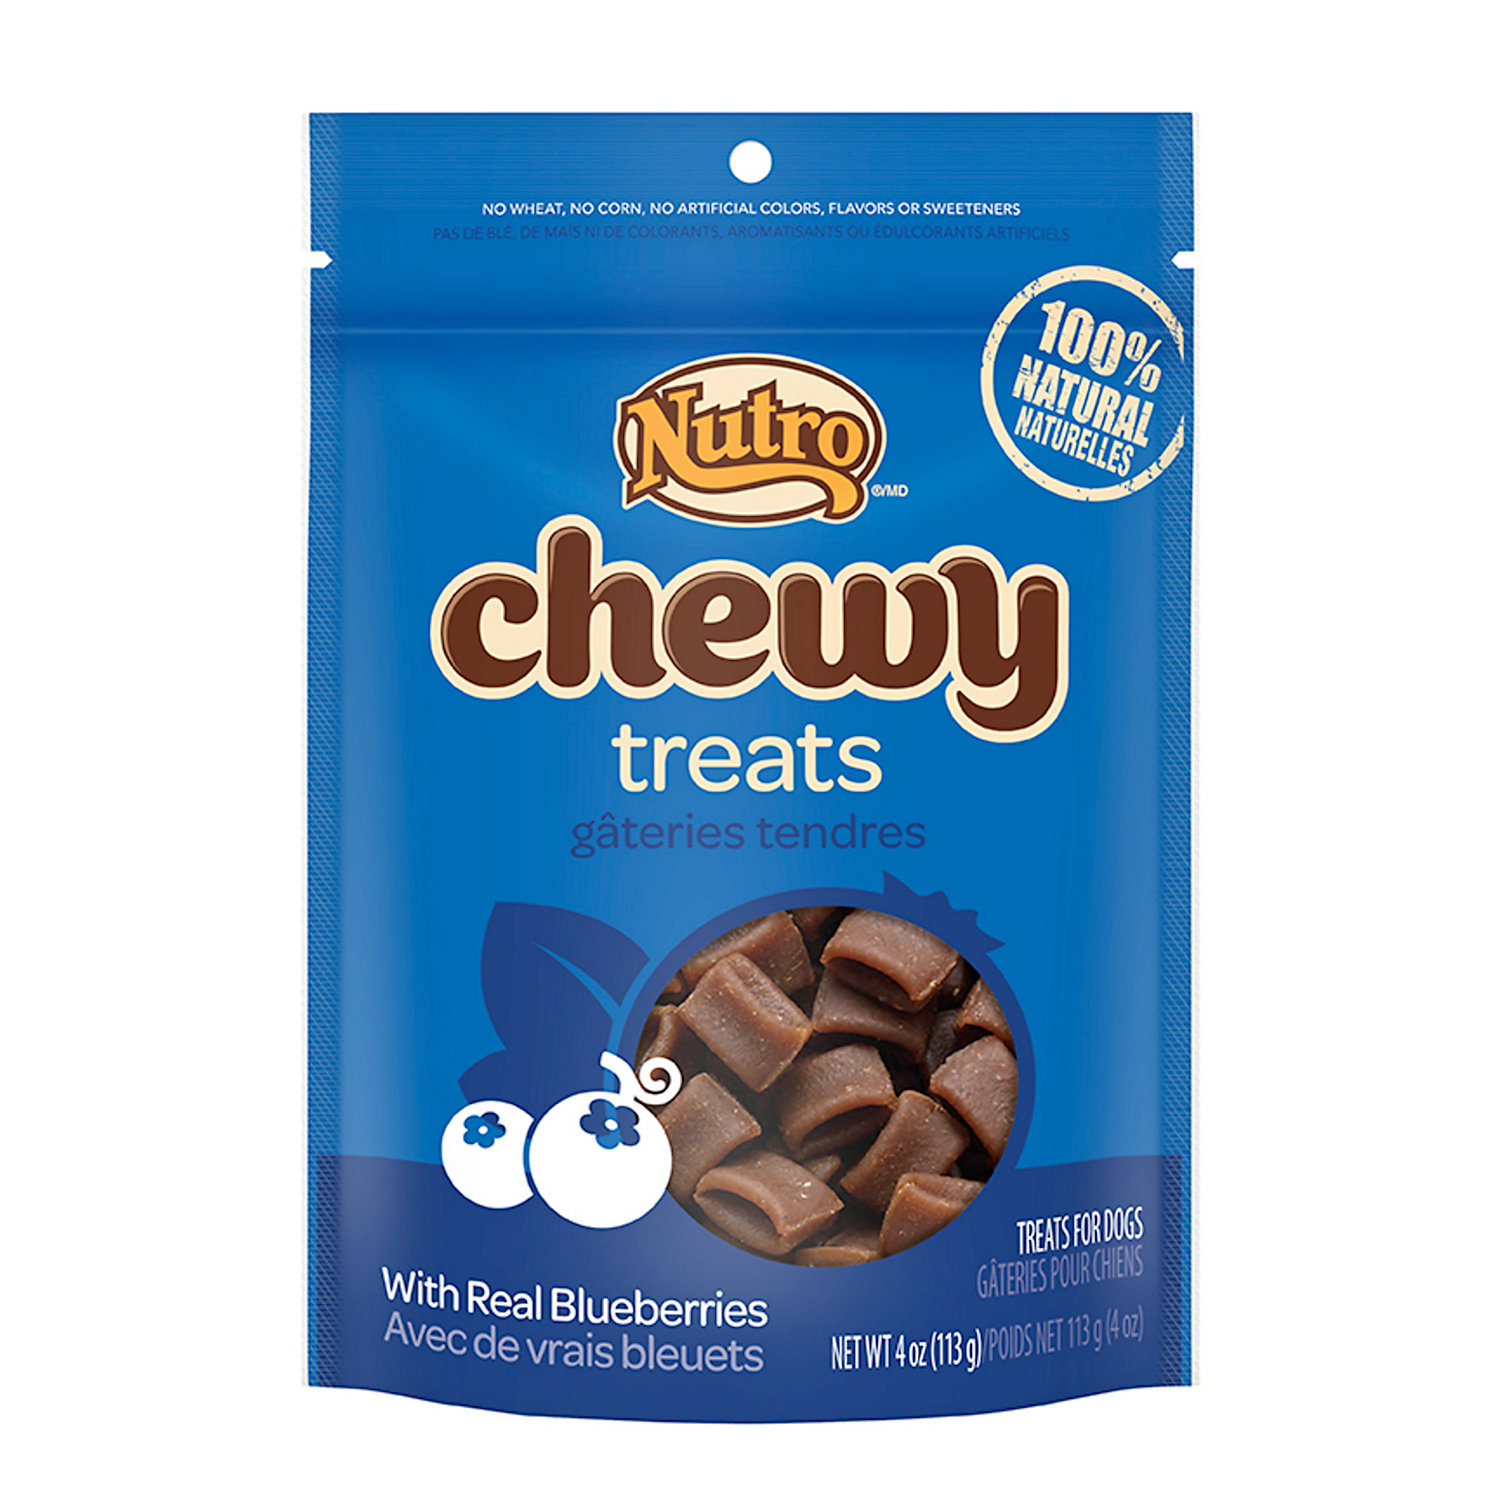 Nutro Chewy Treats With Real Blueberries 100% Natural Treats For Dogs